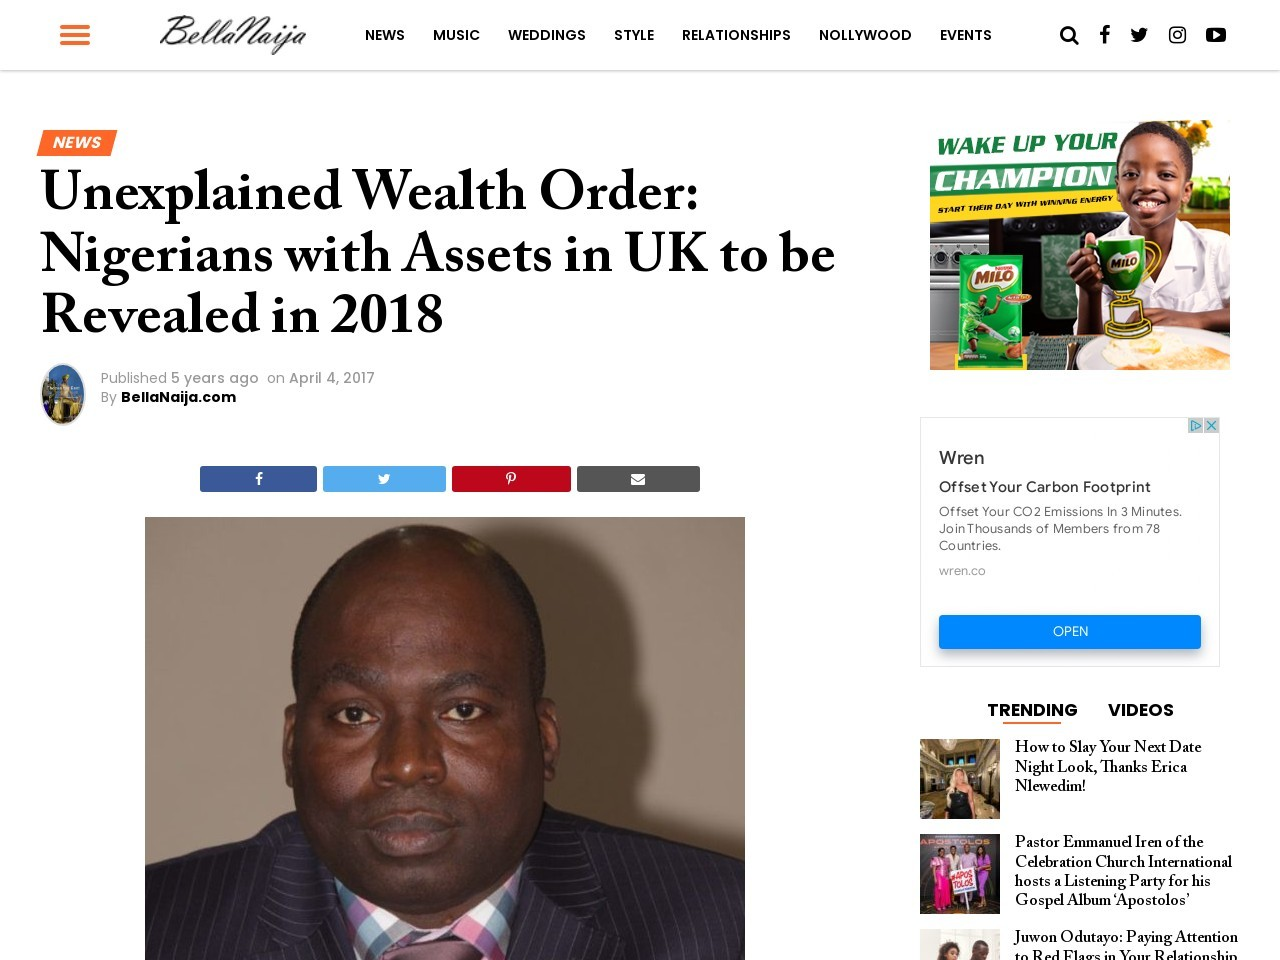 Unexplained Wealth Order: Nigerians with Assets in UK to be Revealed in 2018